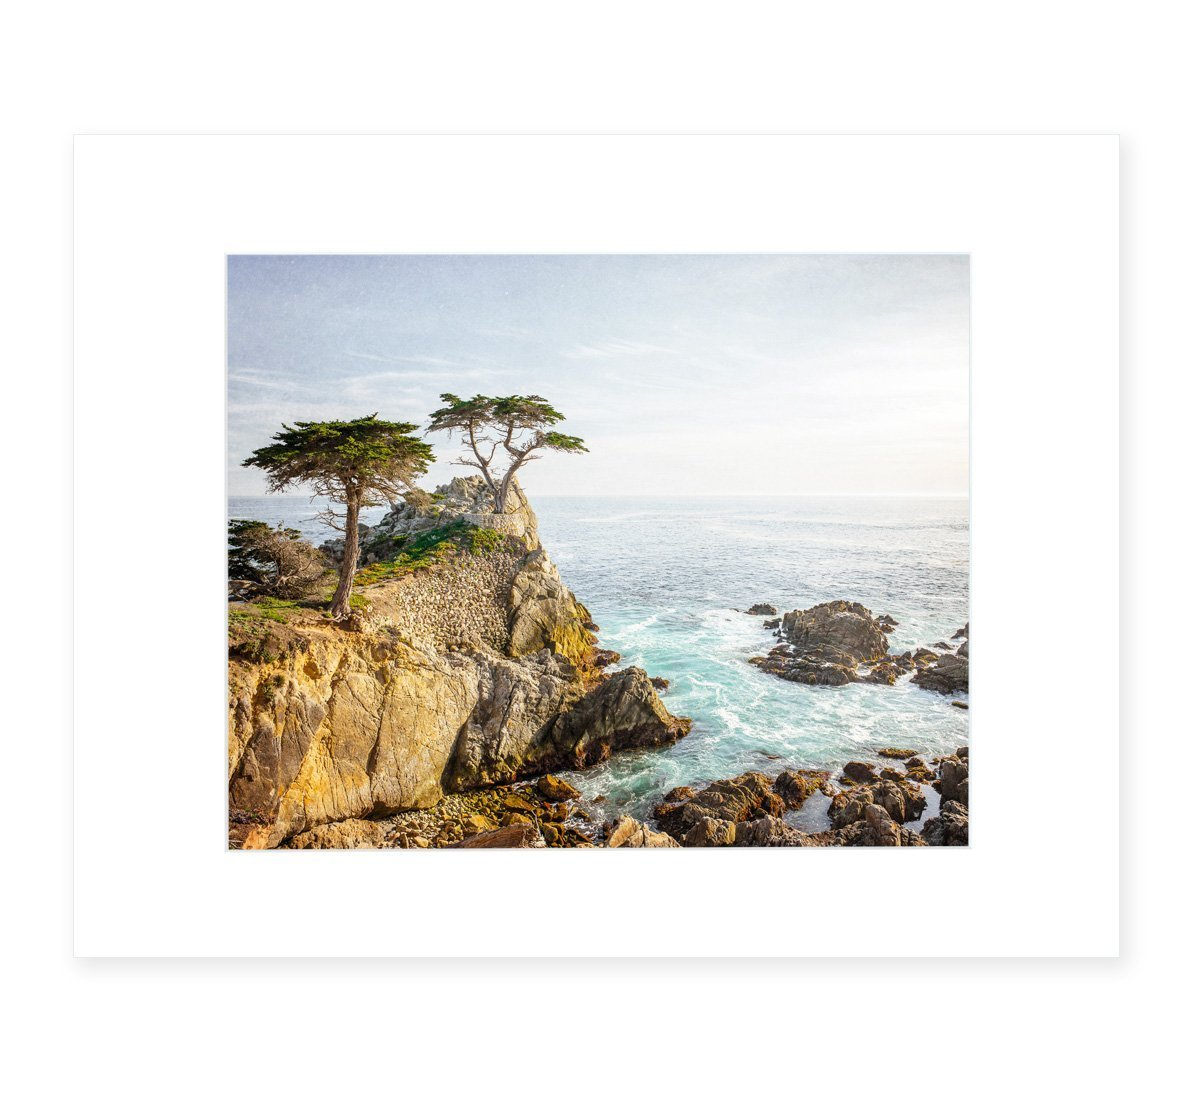 California Coastal Wall Art, Lone Cypress Tree Picture, 8x10 Matted Photographic Print (fits 11x14 frame), 'Lone Cypress'